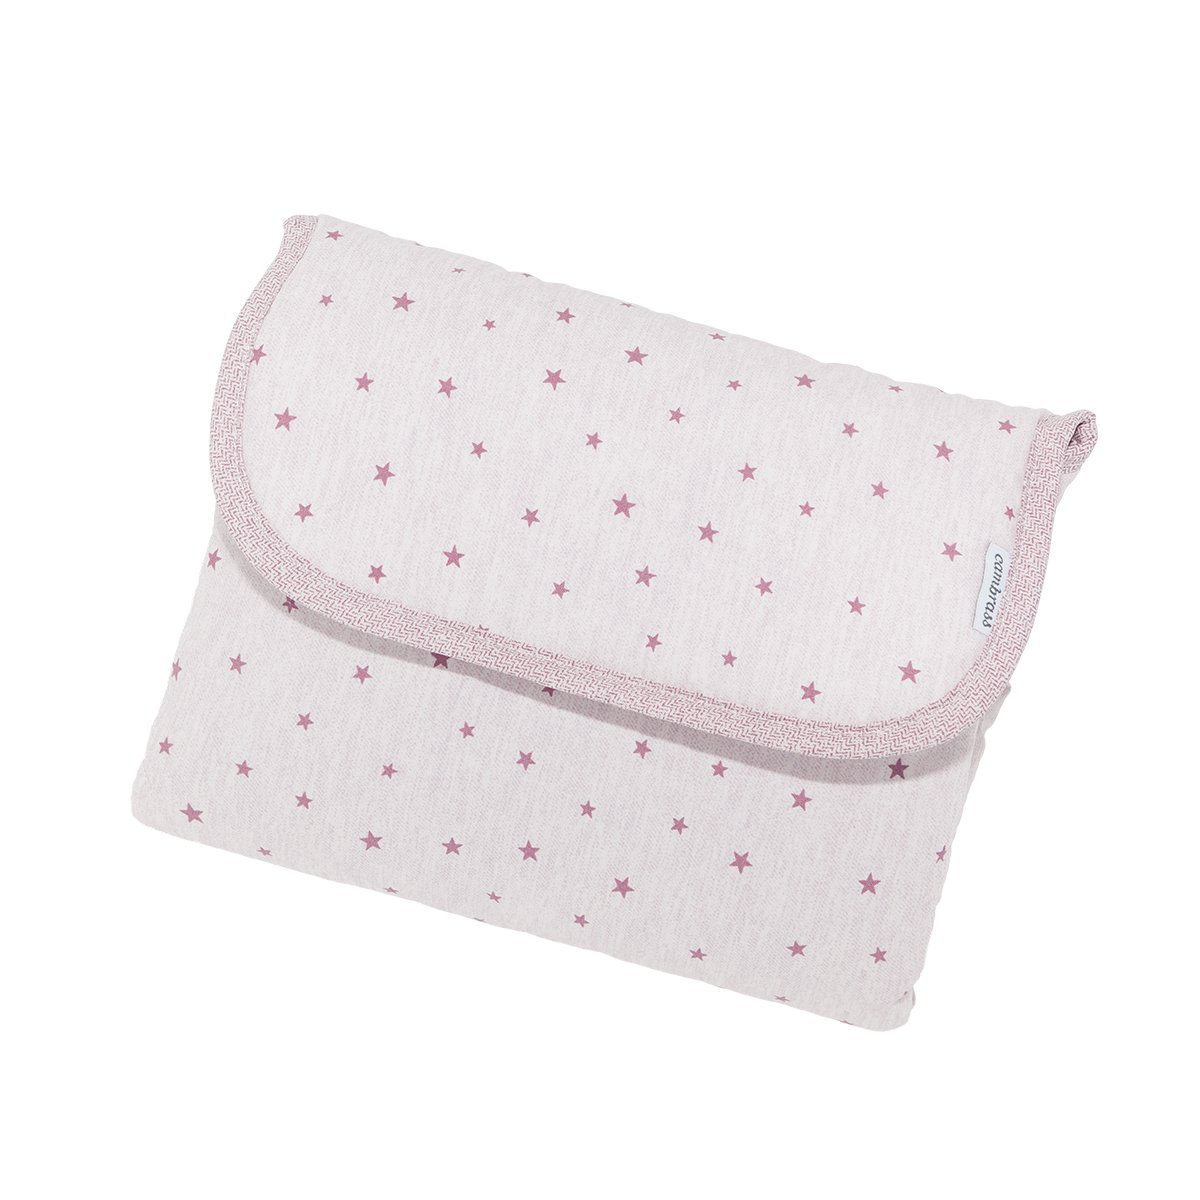 Cambrass Travel Nappy Changer (64 x 42 cm, Stela Pink) 37320.0